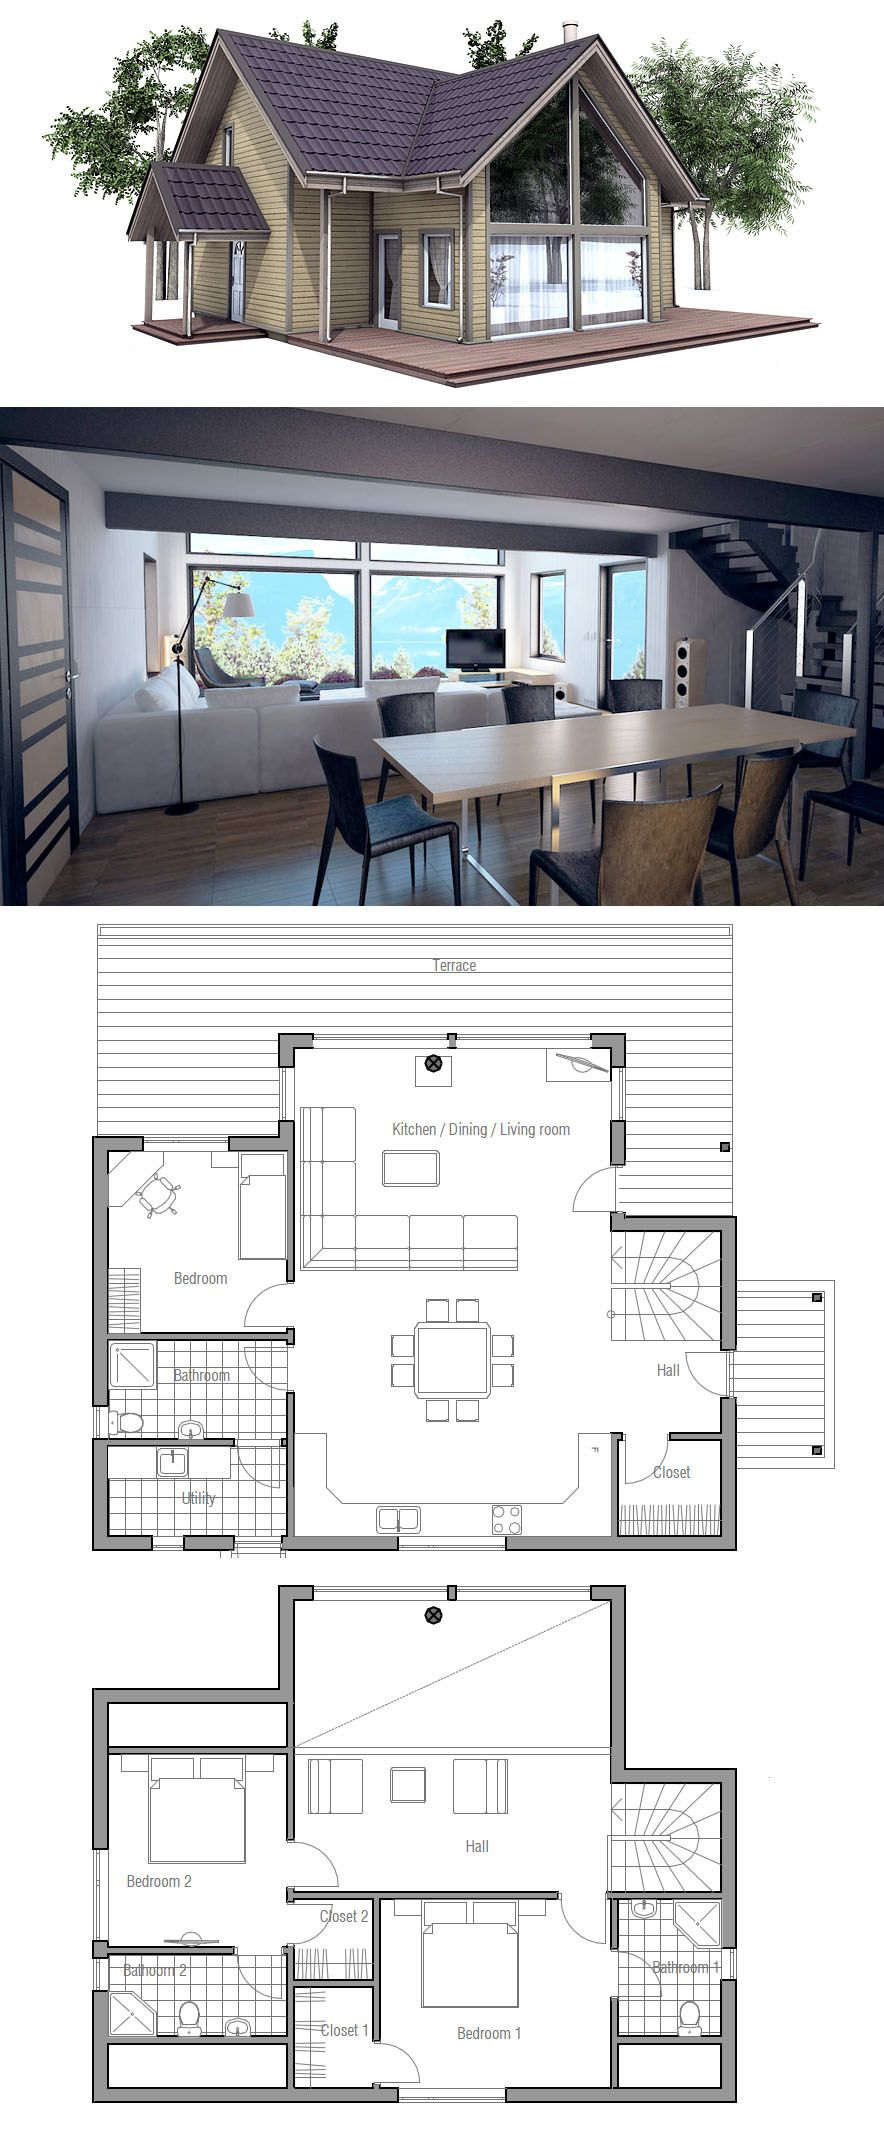 Scandinavian Design Swedish Design Litet Hus Hus Plan Small House House Plans Small House Plans